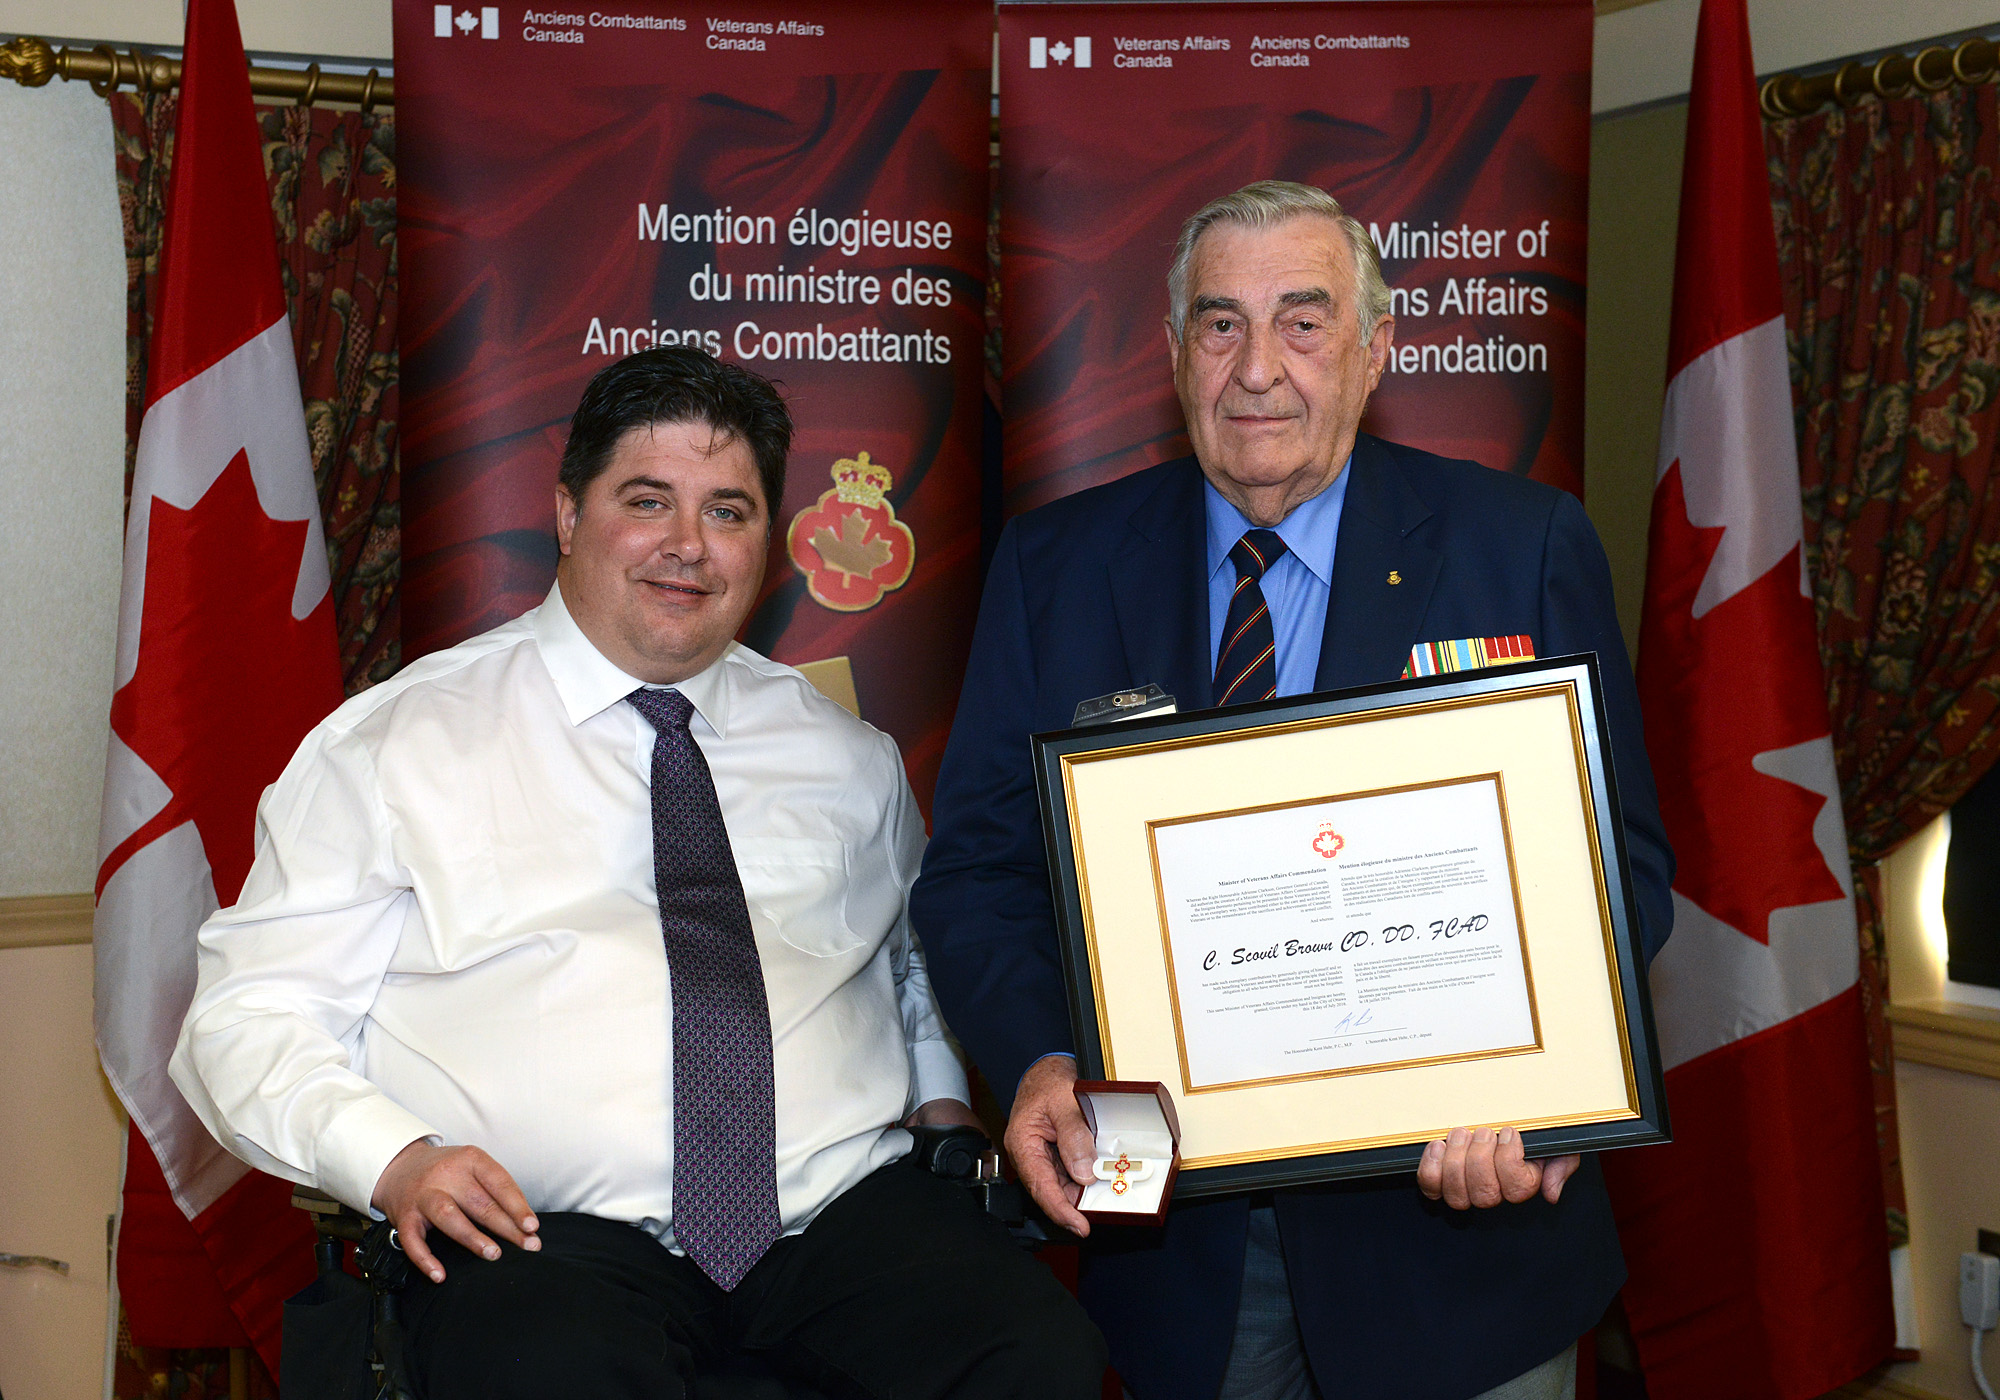 The honorable Kent Hehr, Minister for Veterans Affairs and Mr. Carl Scovil Brown.